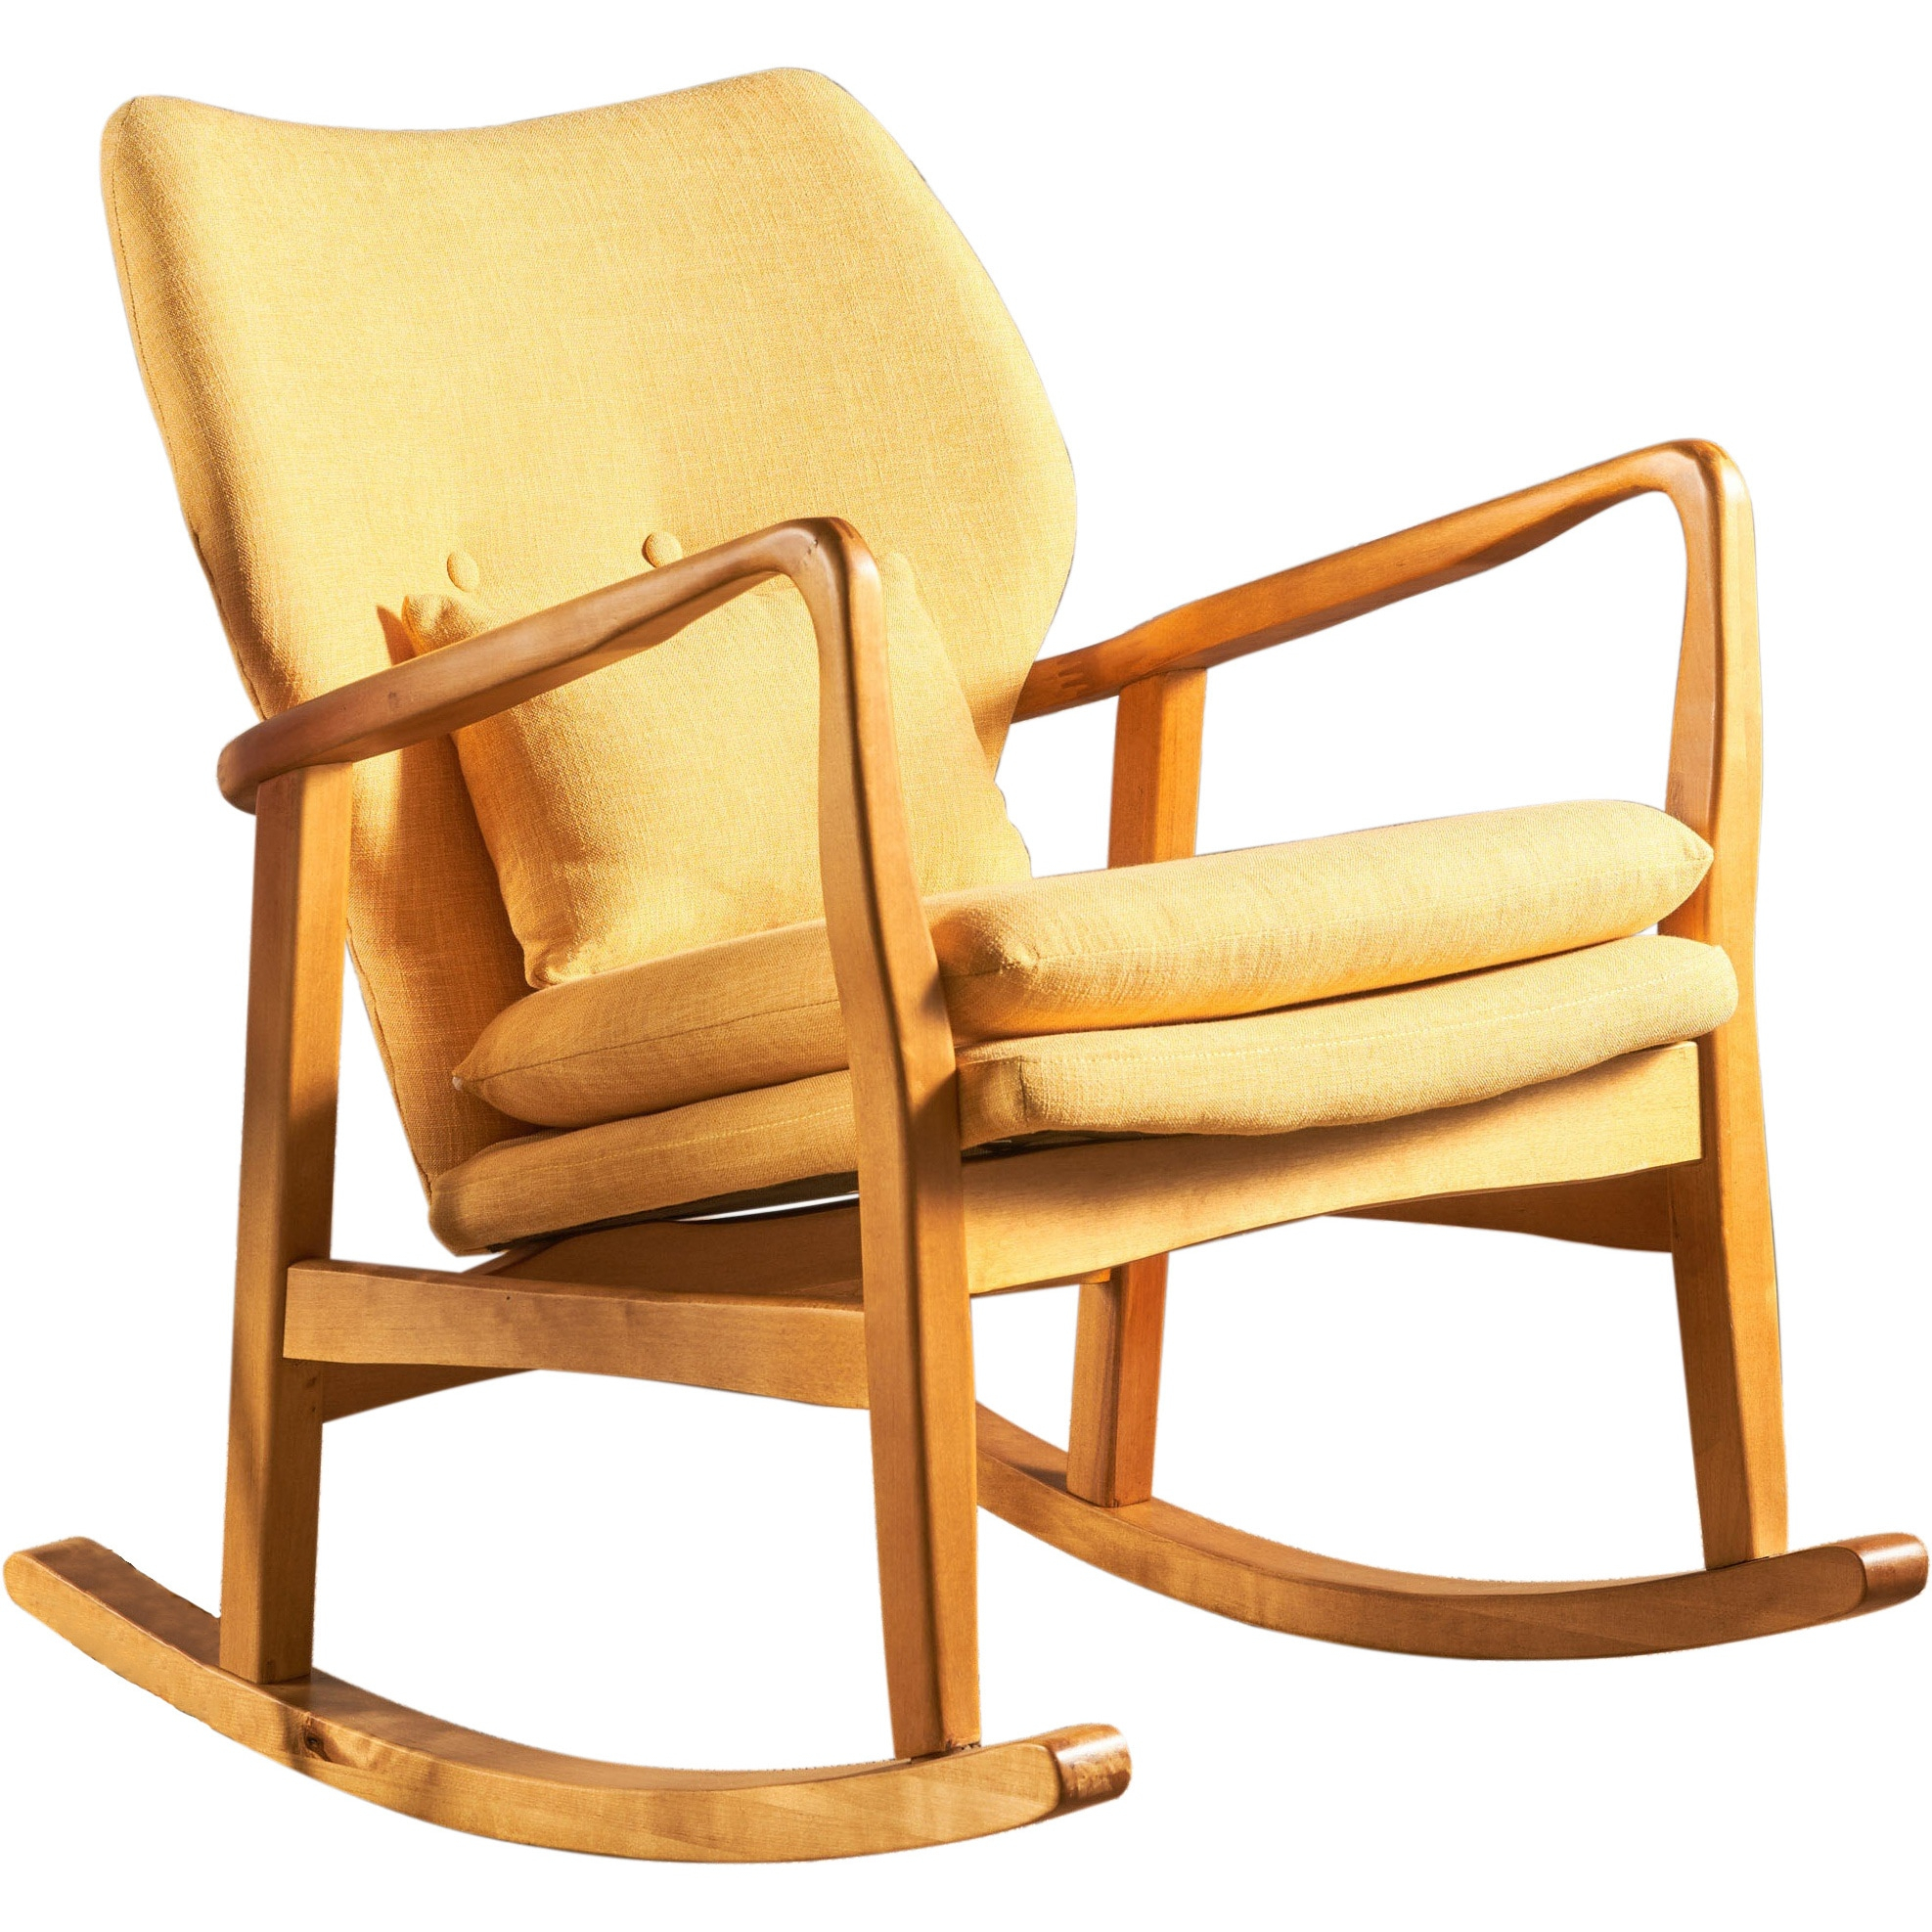 Benny Mid Century Modern Fabric Rocking Chair In Mid Century Fabric Rocking Chairs (#4 of 20)